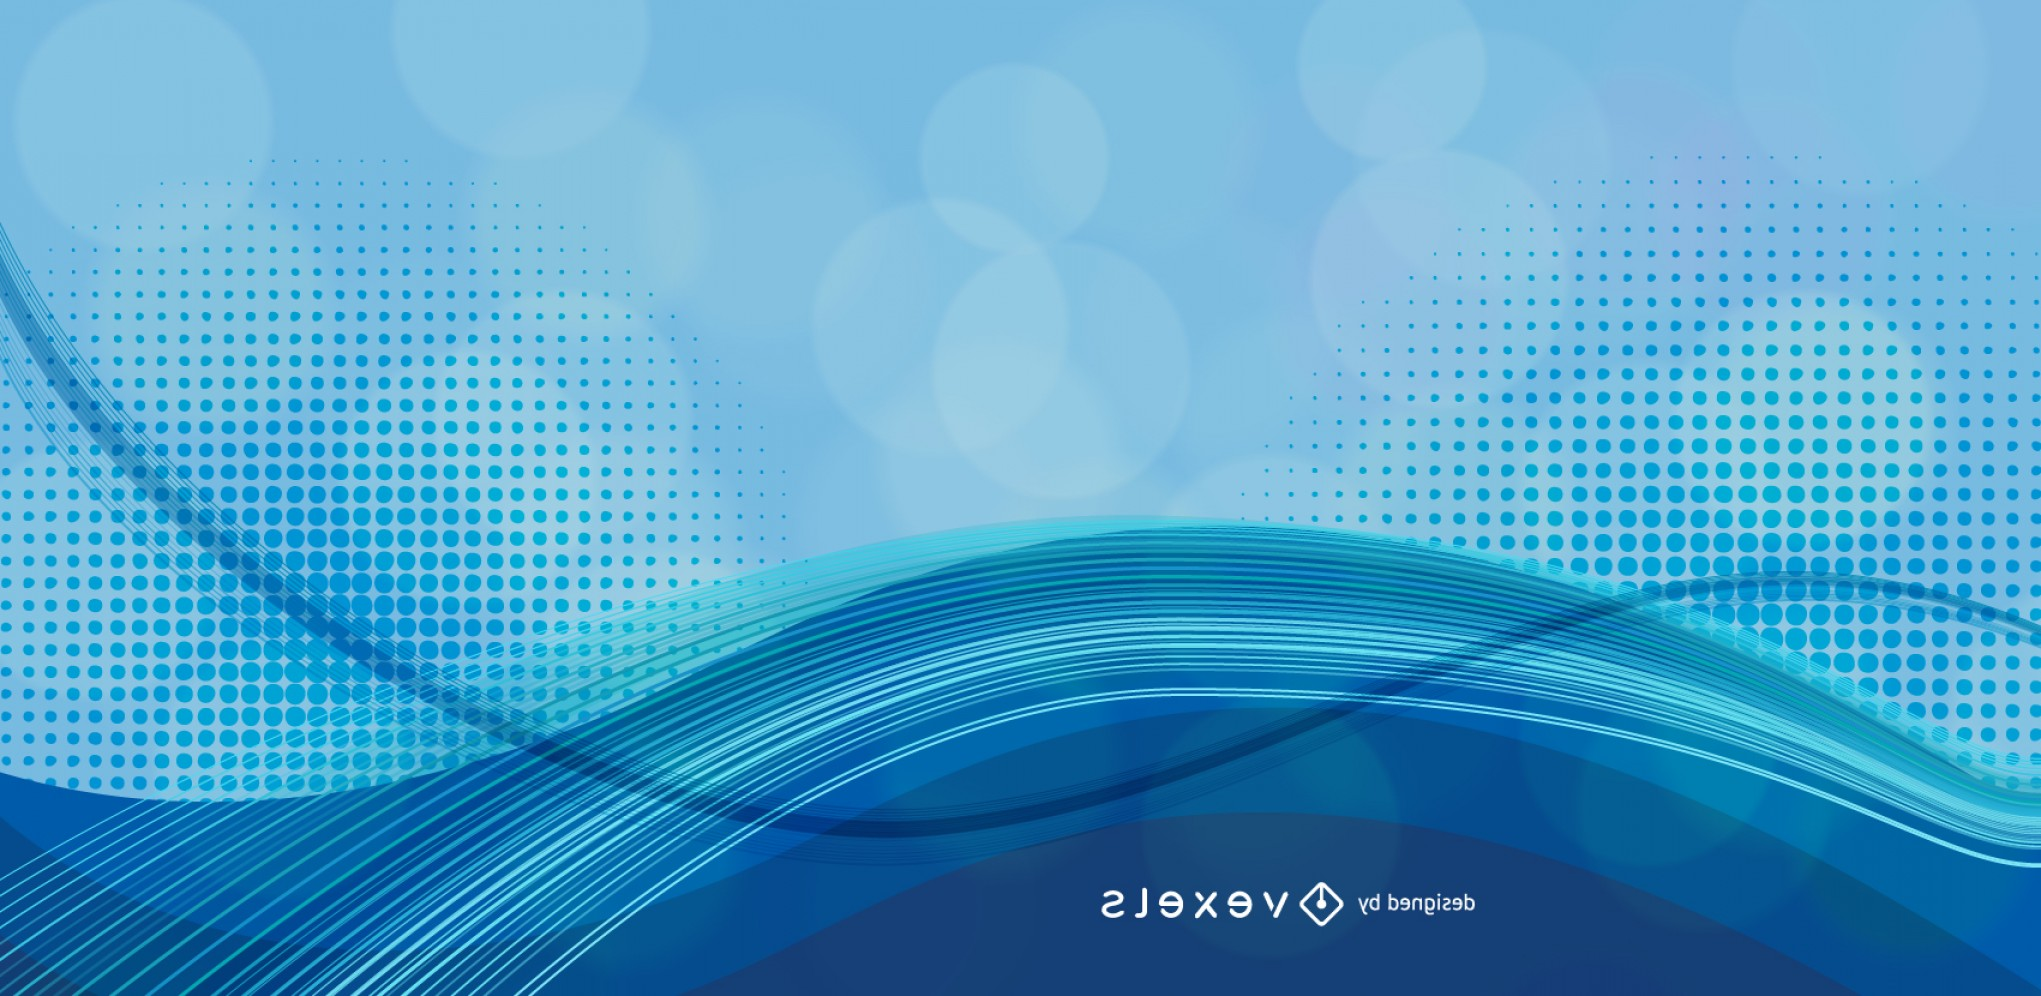 Backgroung Vector: Abstract Blue Background Vector Graphic